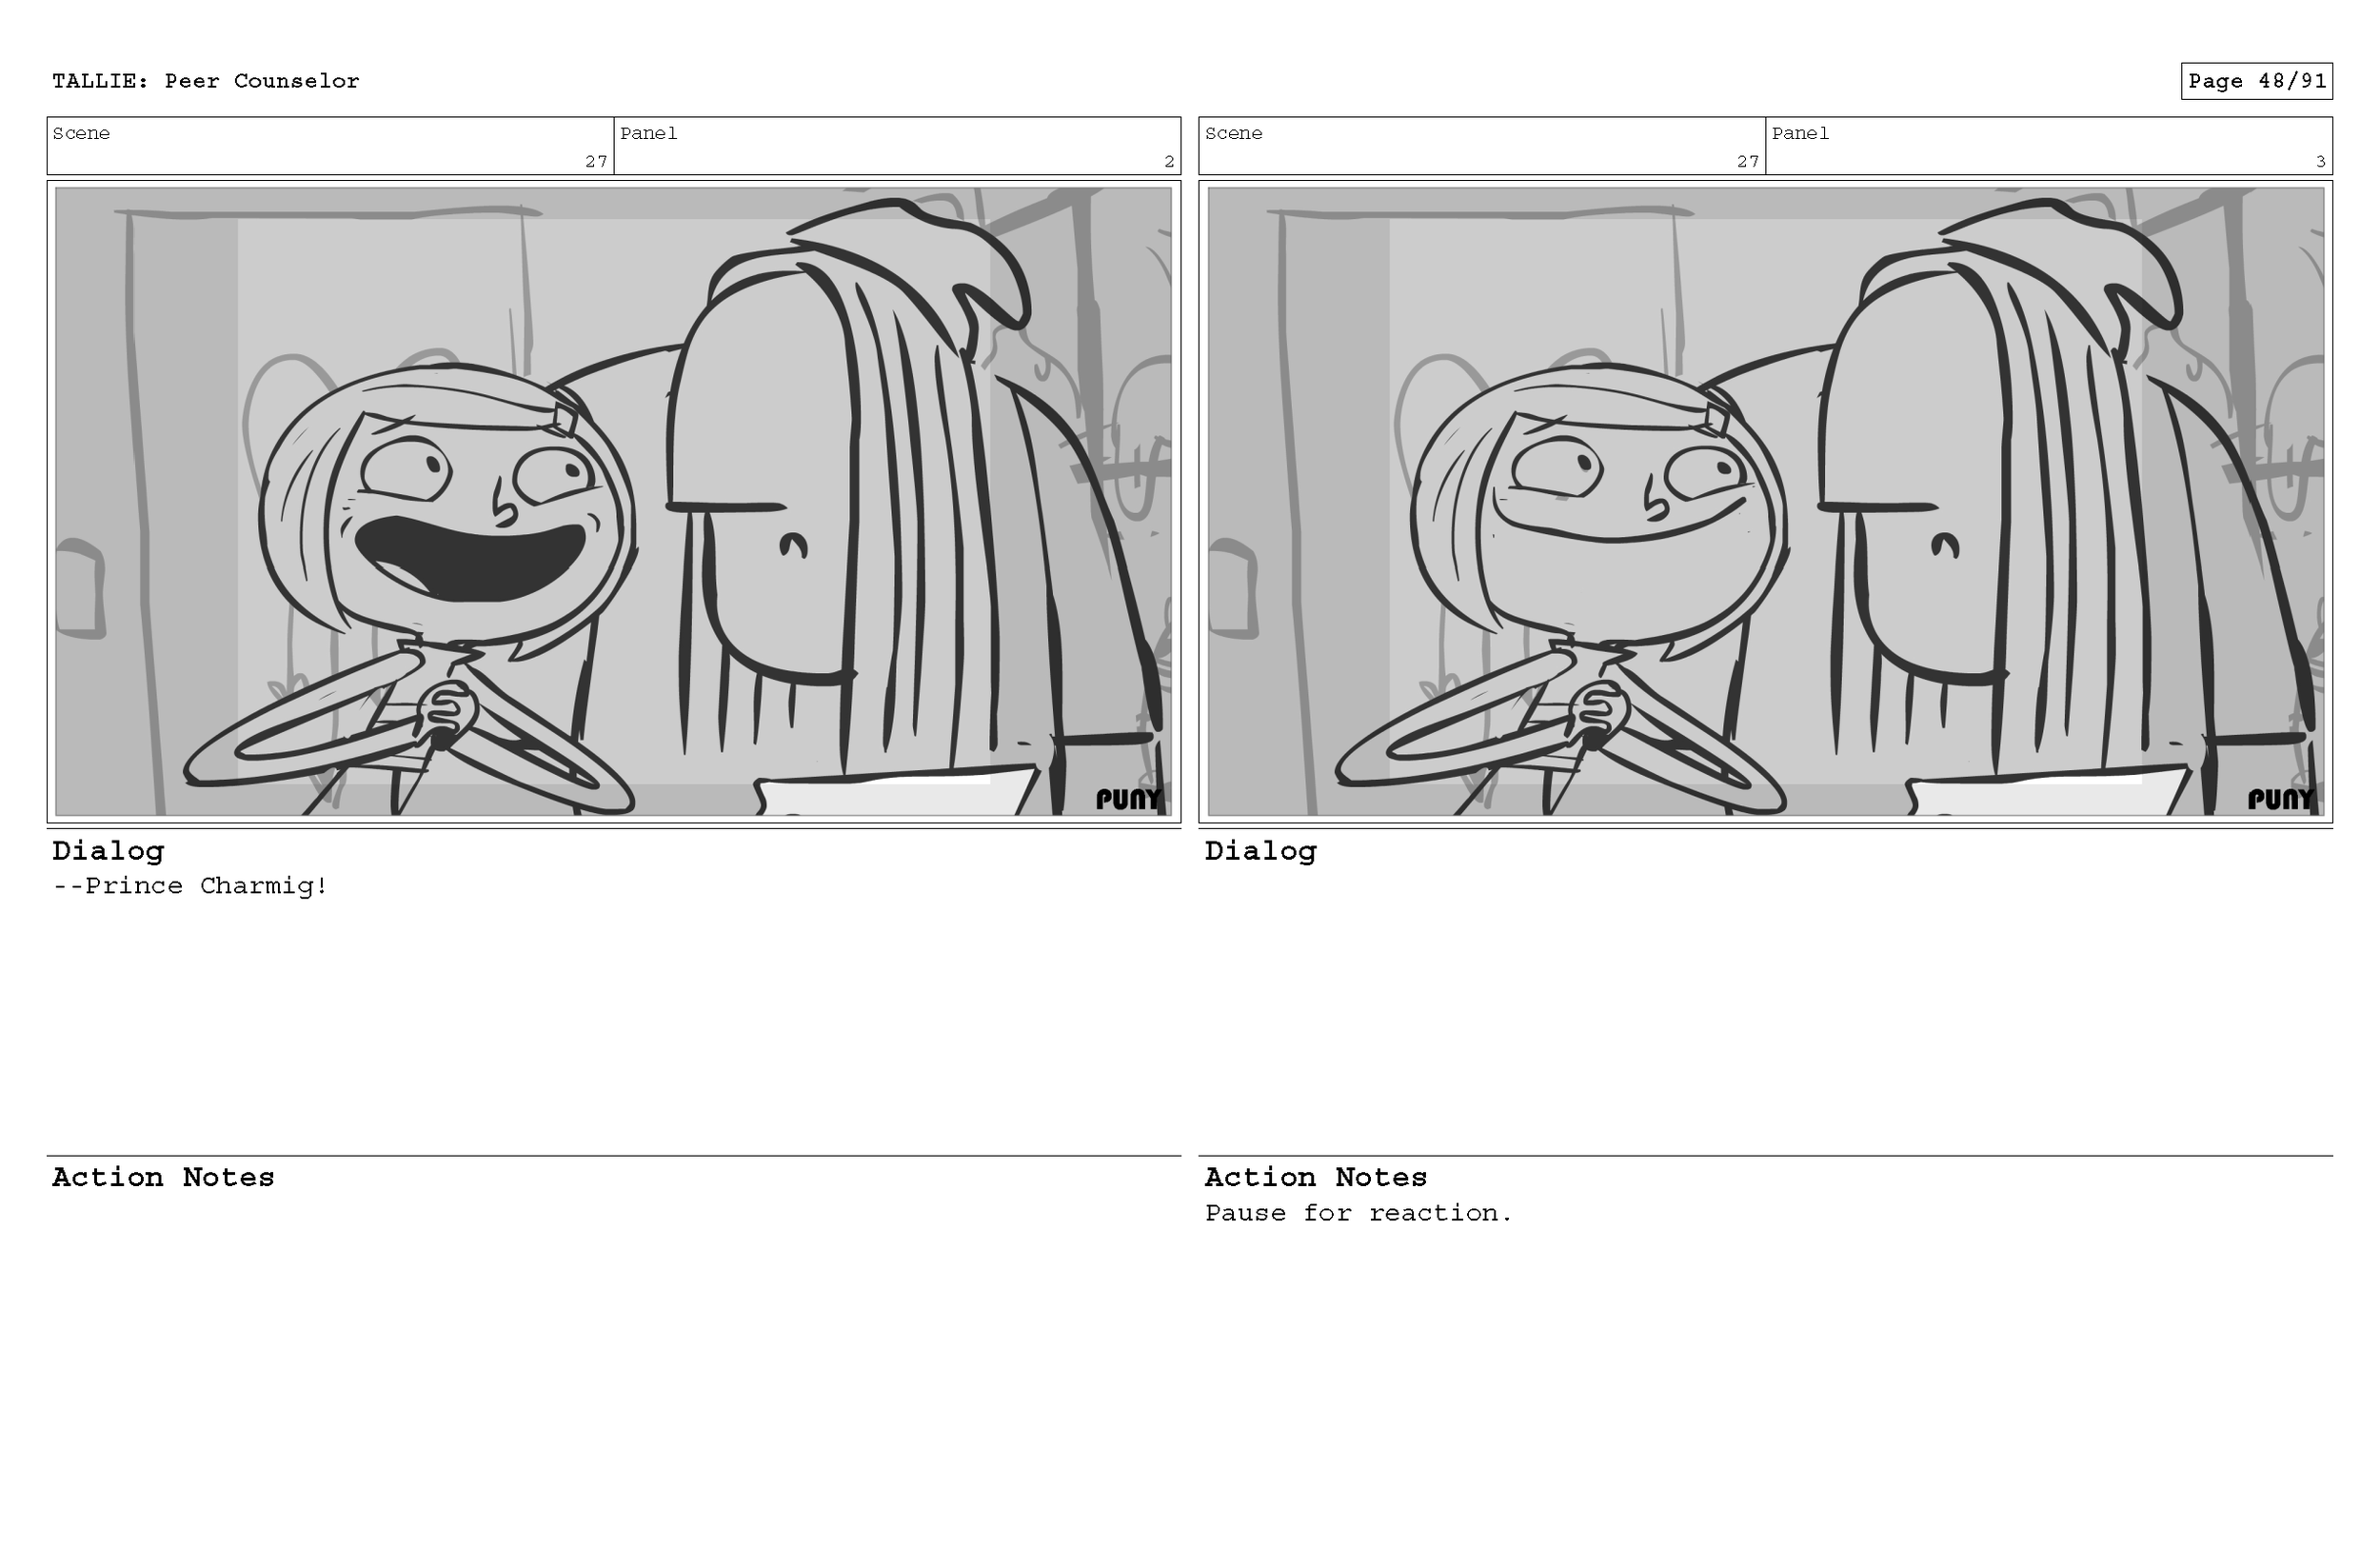 MikeOwens_STORYBOARDS_TallieSilverman_Page_49.png